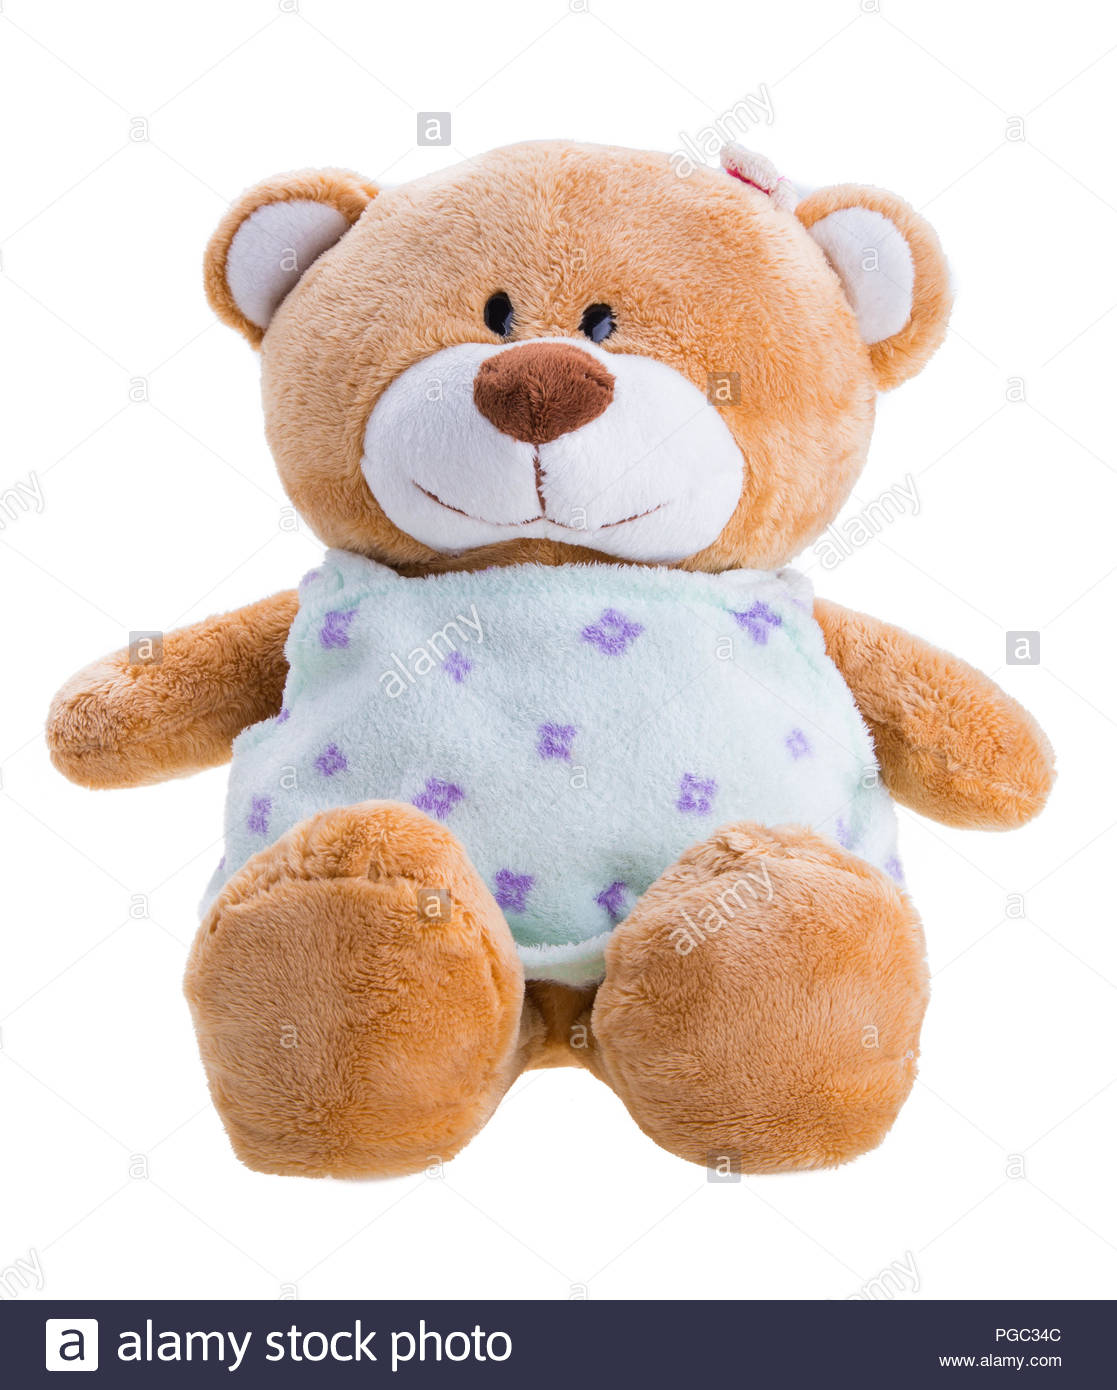 Bear Stock Photos Images Page 191 Alamy Canon Eos Couple Teddies Toy Teddy Isolated On White Image